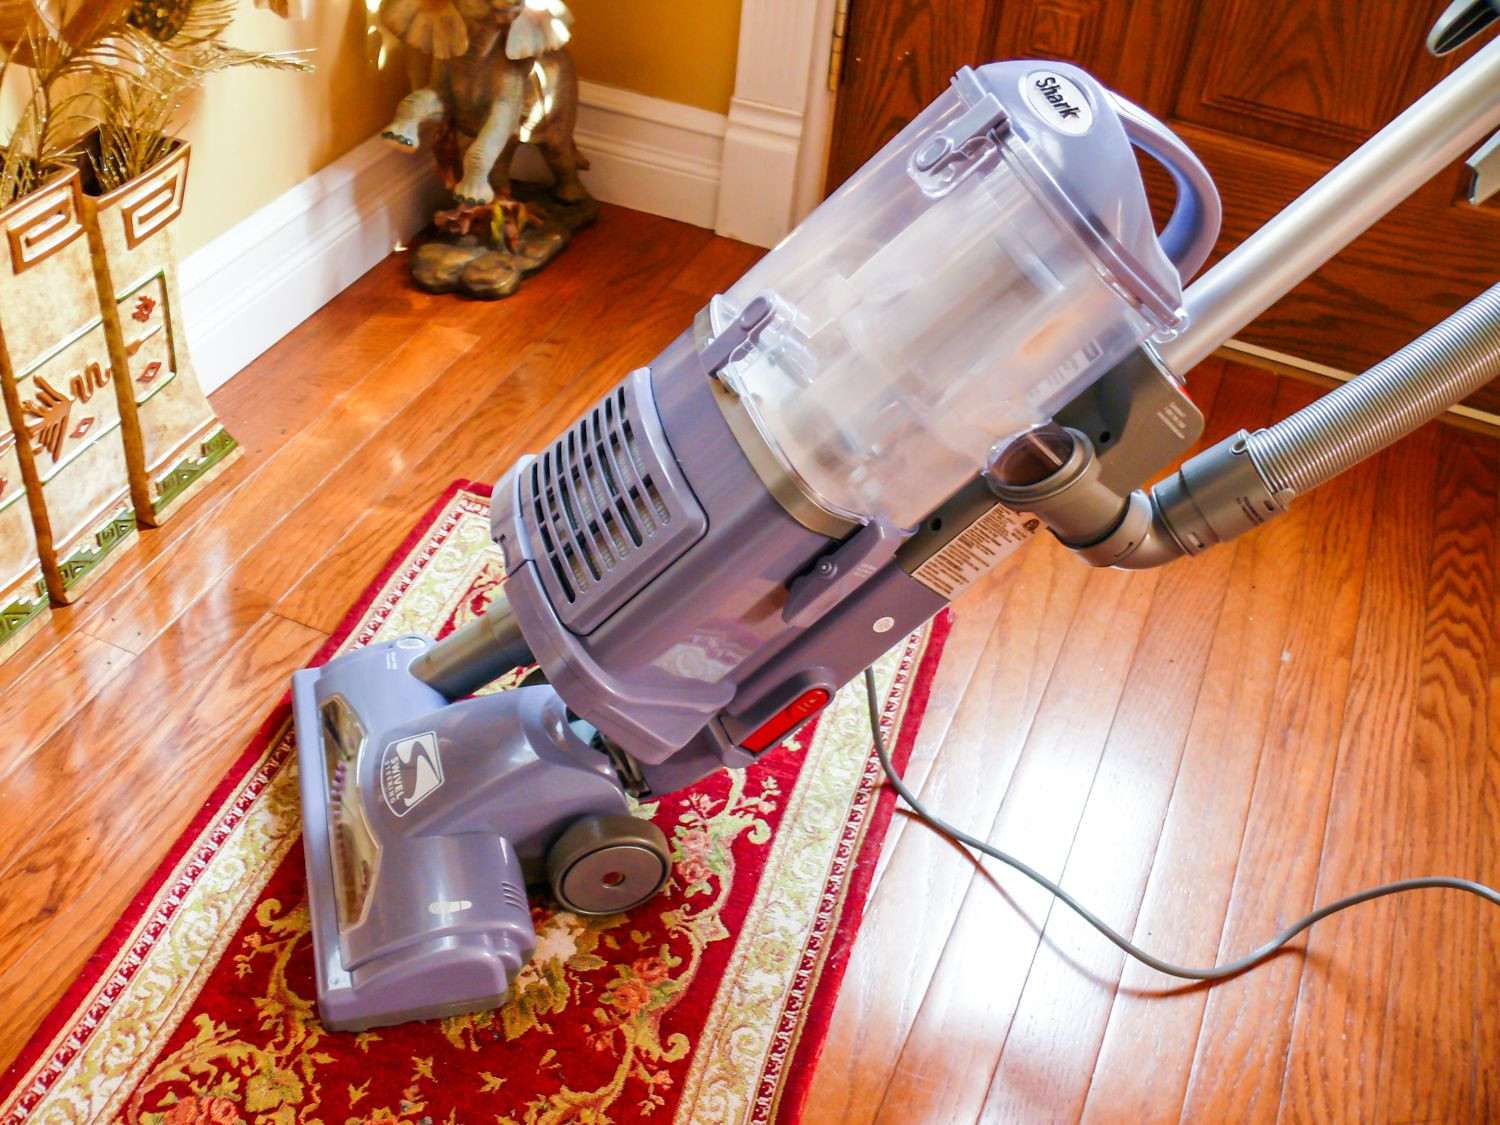 hardwood floor vacuum and steam cleaner reviews of the 10 best vacuum cleaners to buy in 2018 with 4062974 2 2 5bbf718a46e0fb00519d59a7